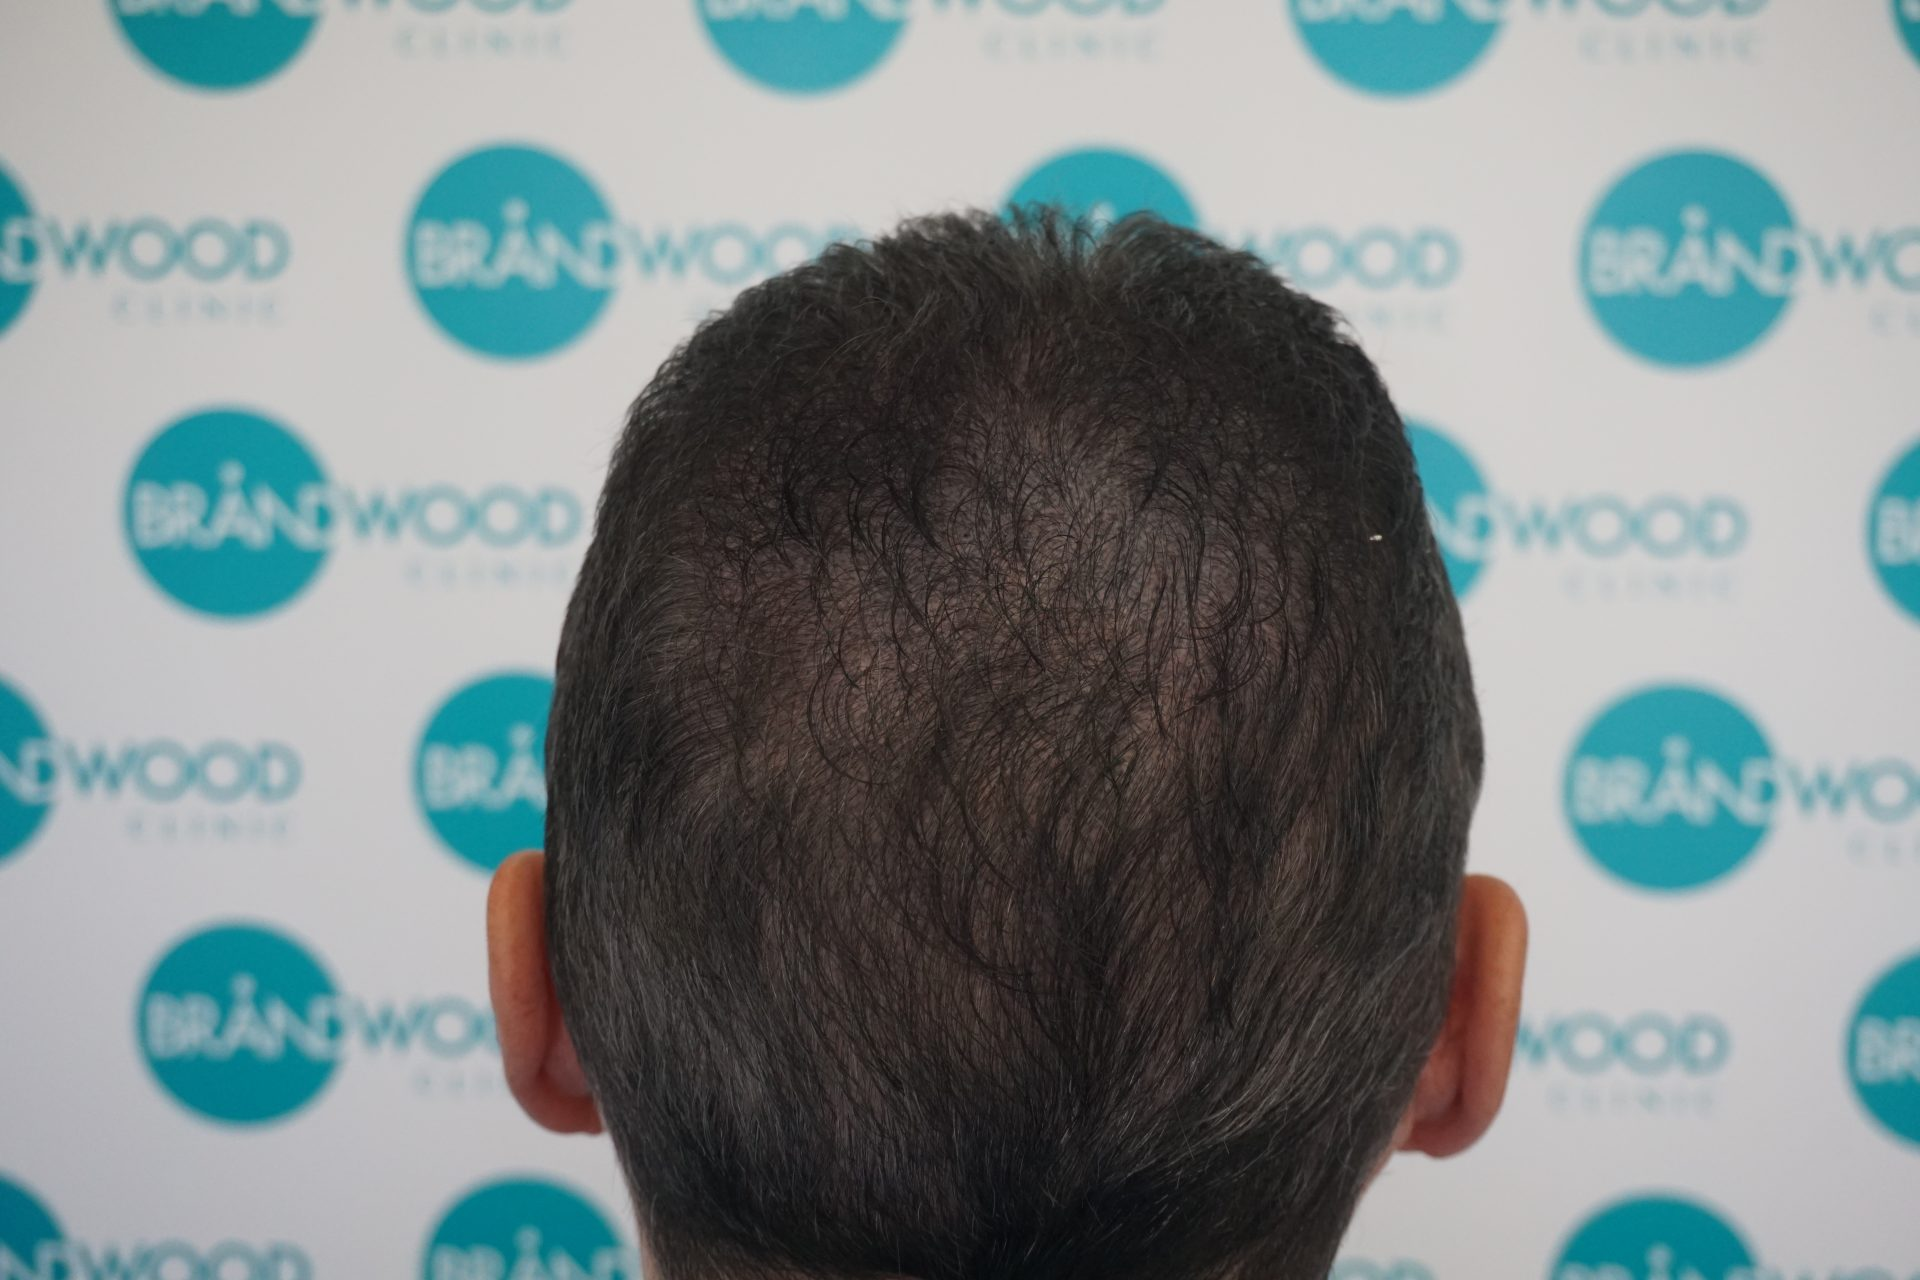 hair loss, scalp micropigmentation, hair tattoo